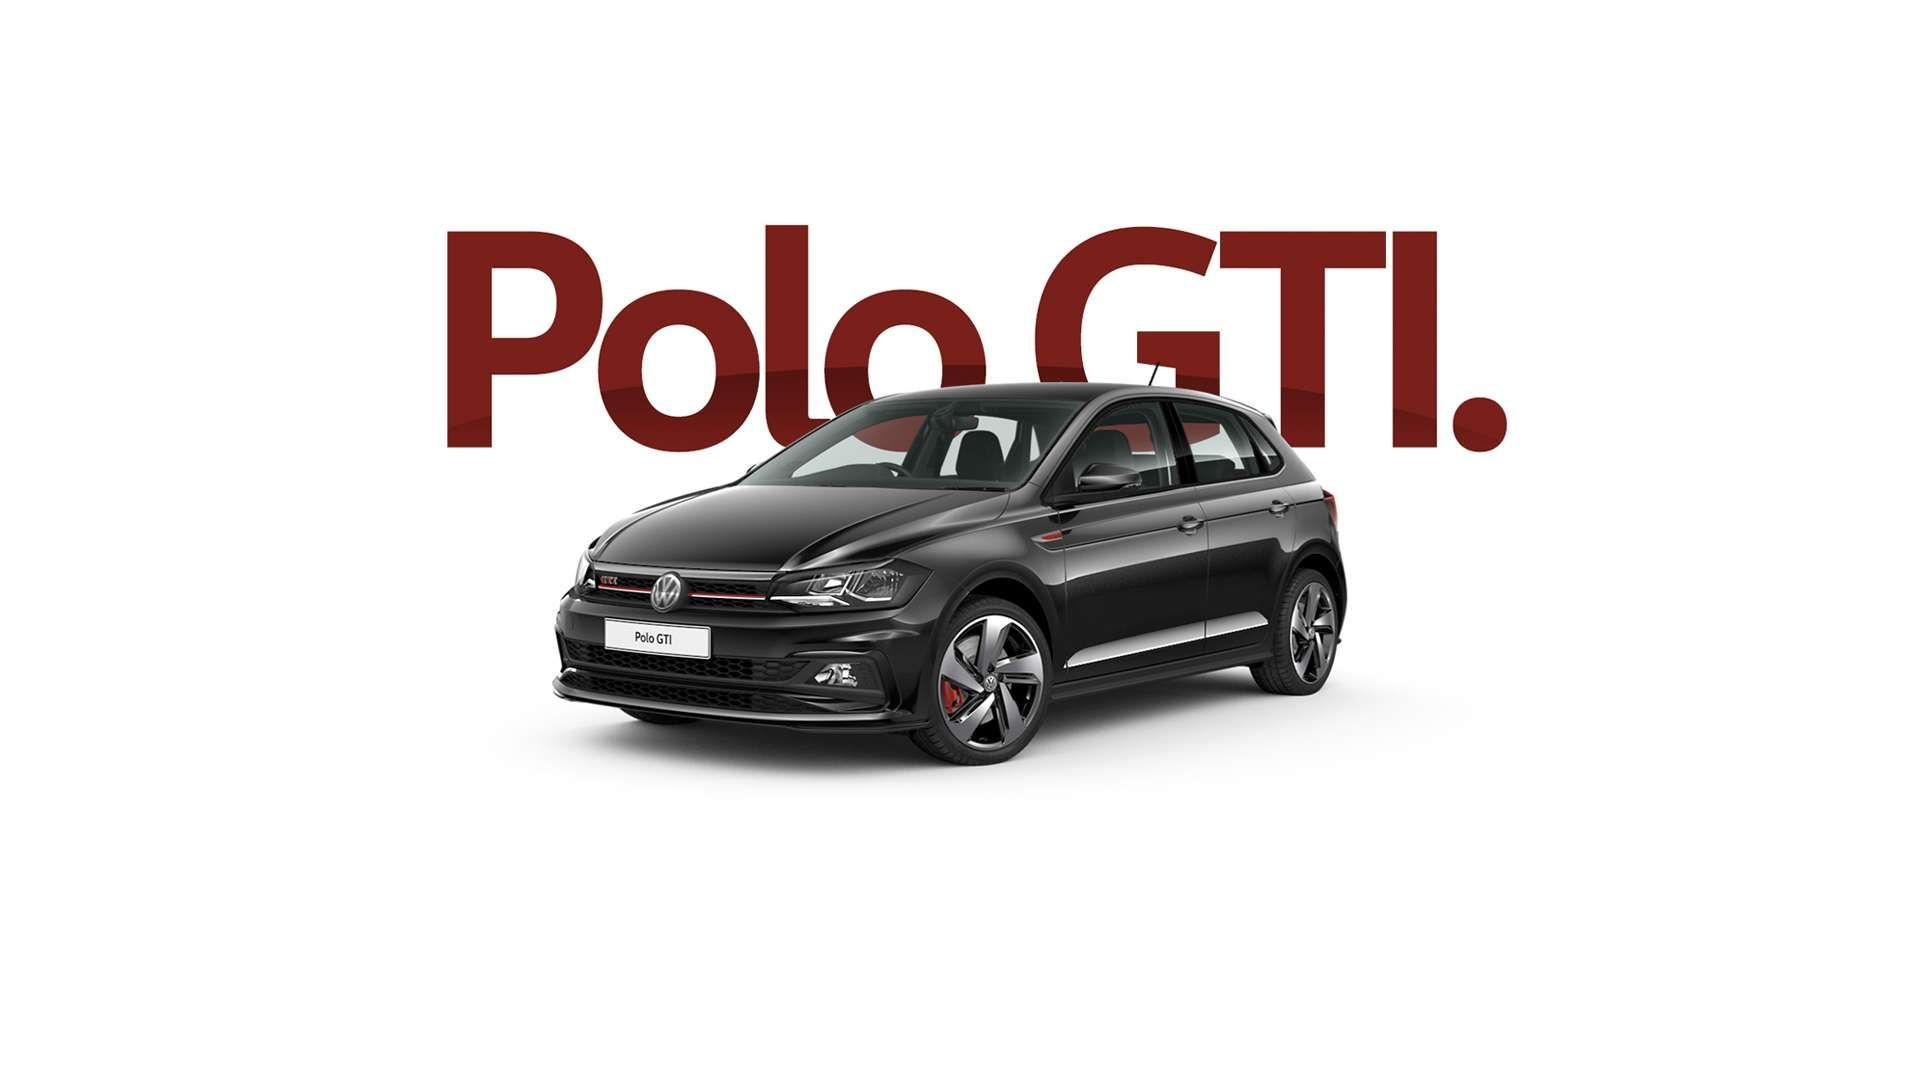 Deep Black Polo GTI